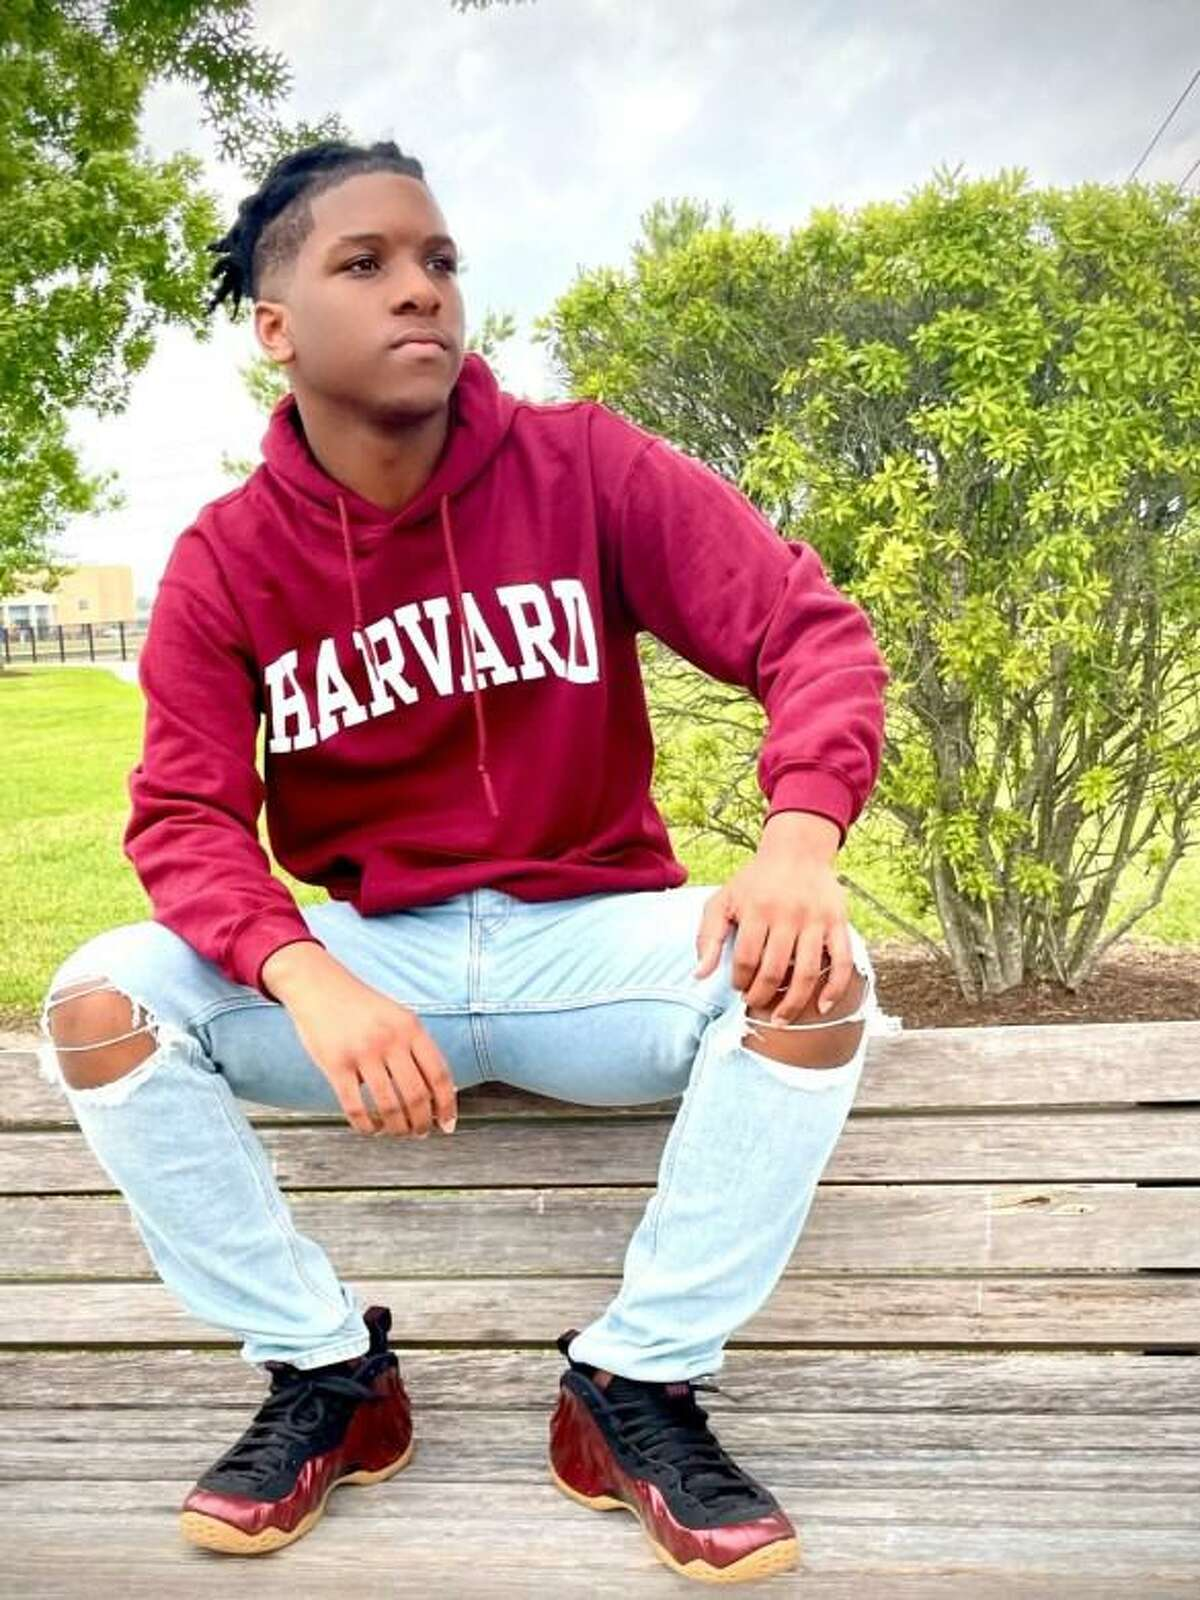 Da'Vion Tatum, Westfield High School's valedictorian, applied to seven Ivy League universities and was accepted to all of them, plus four other top colleges.